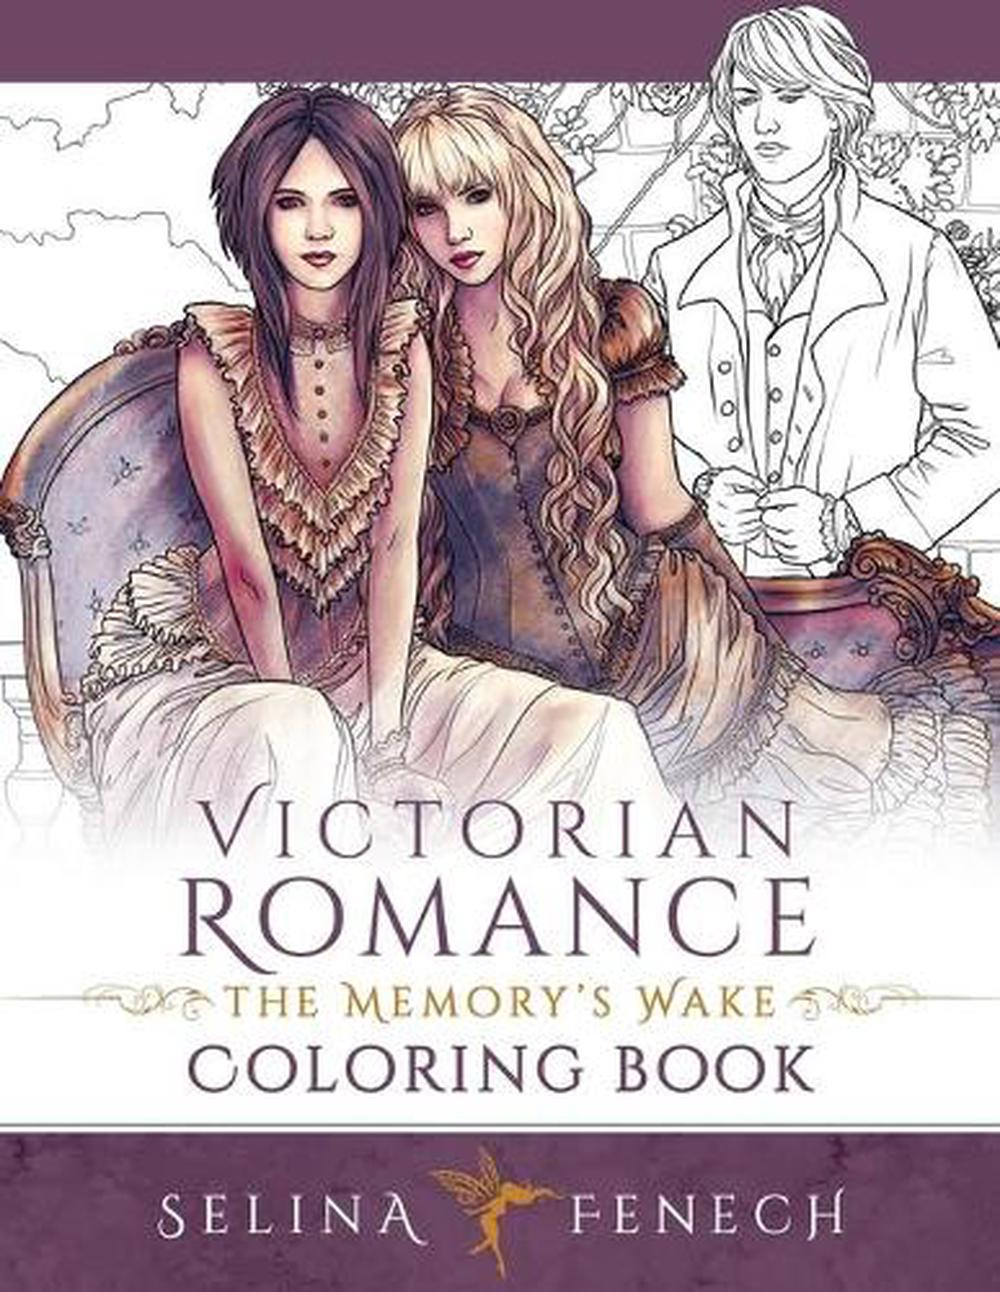 - Victorian Romance - The Memory's Wake Coloring Book By Selina